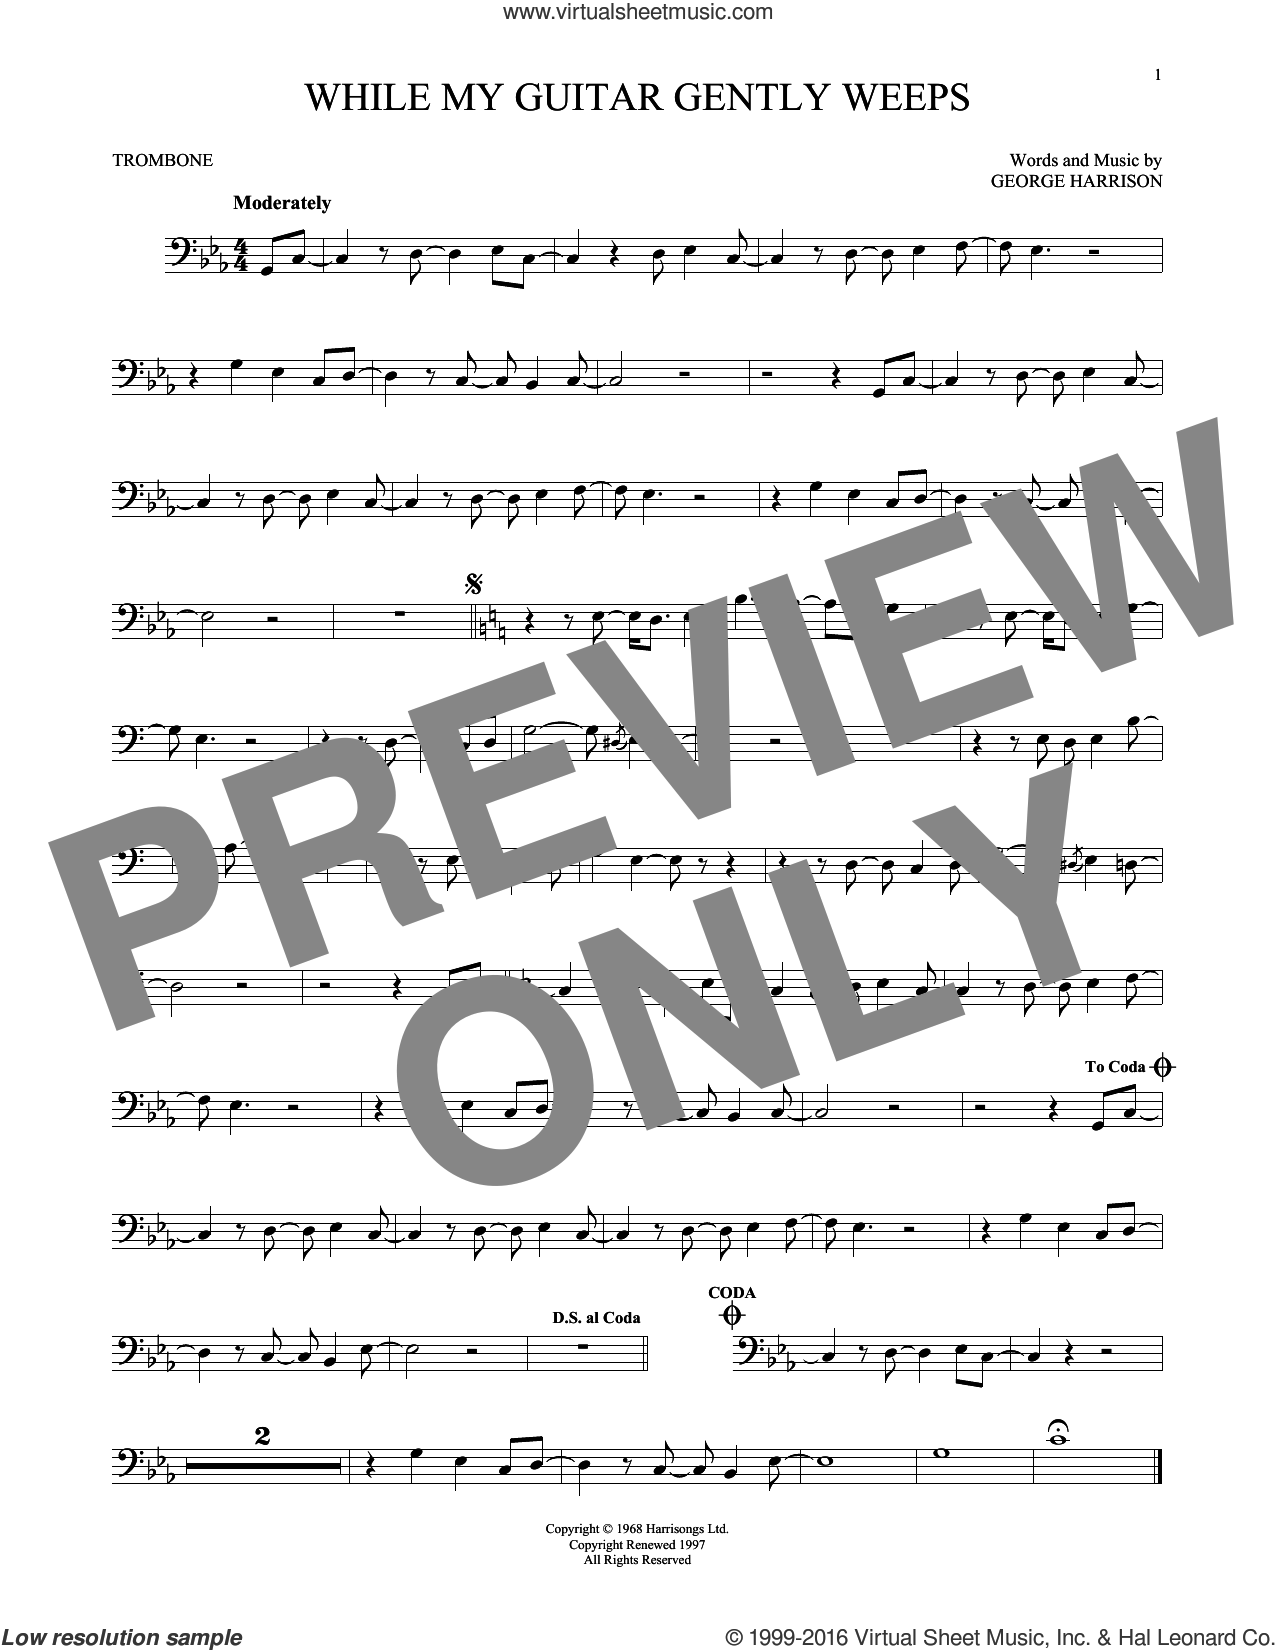 While My Guitar Gently Weeps sheet music for trombone solo by The Beatles. Score Image Preview.